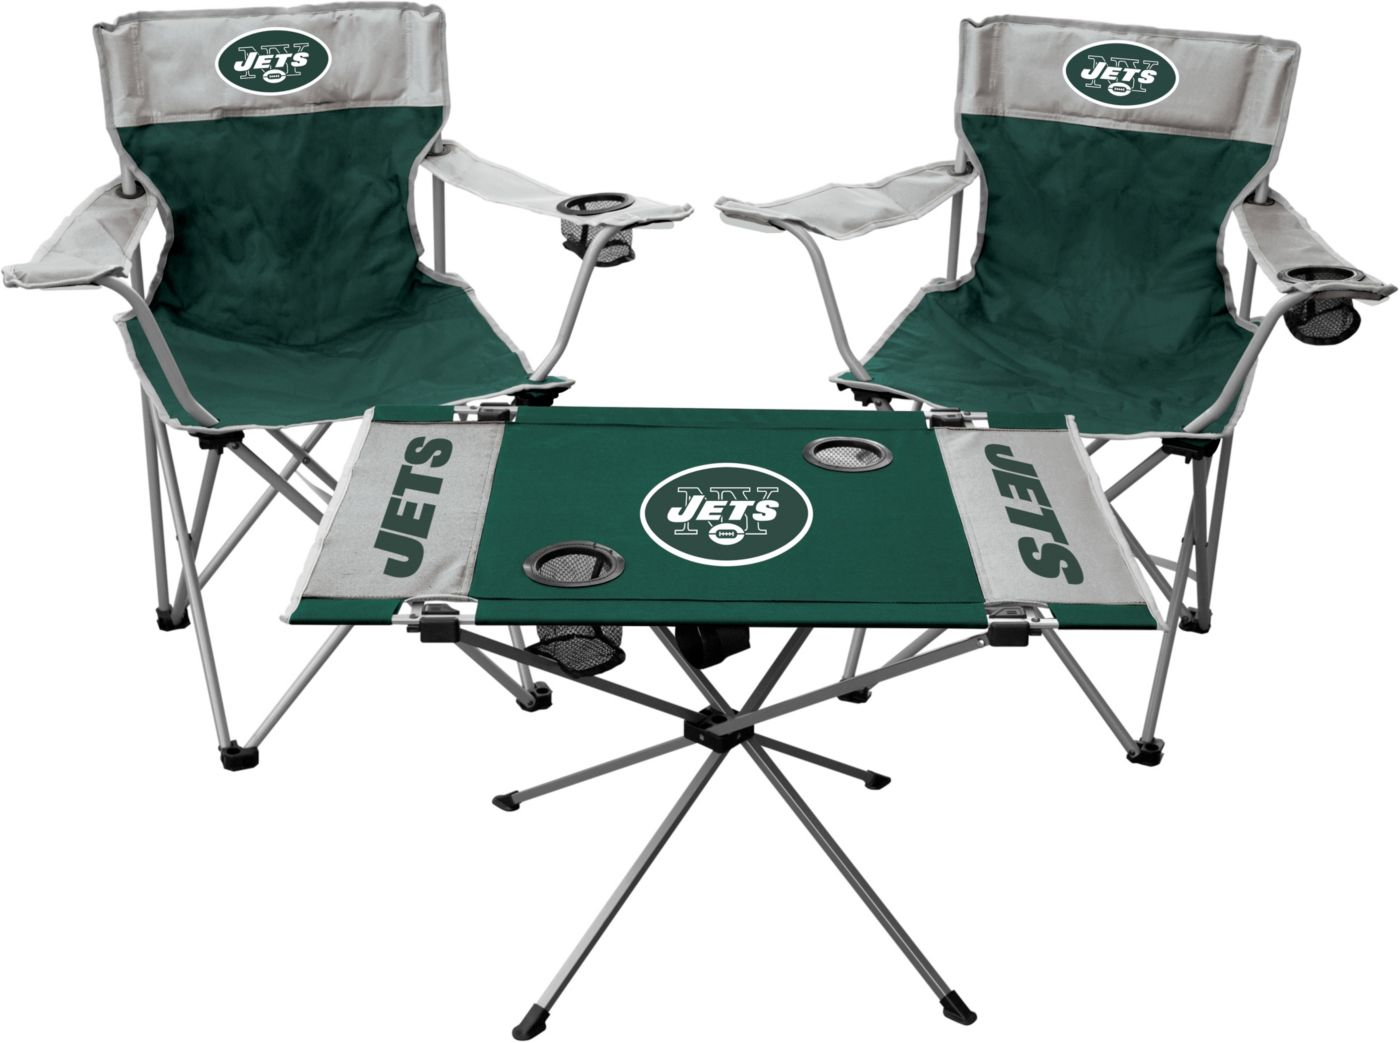 Rawlings New York Jets 3-Piece Tailgate Kit